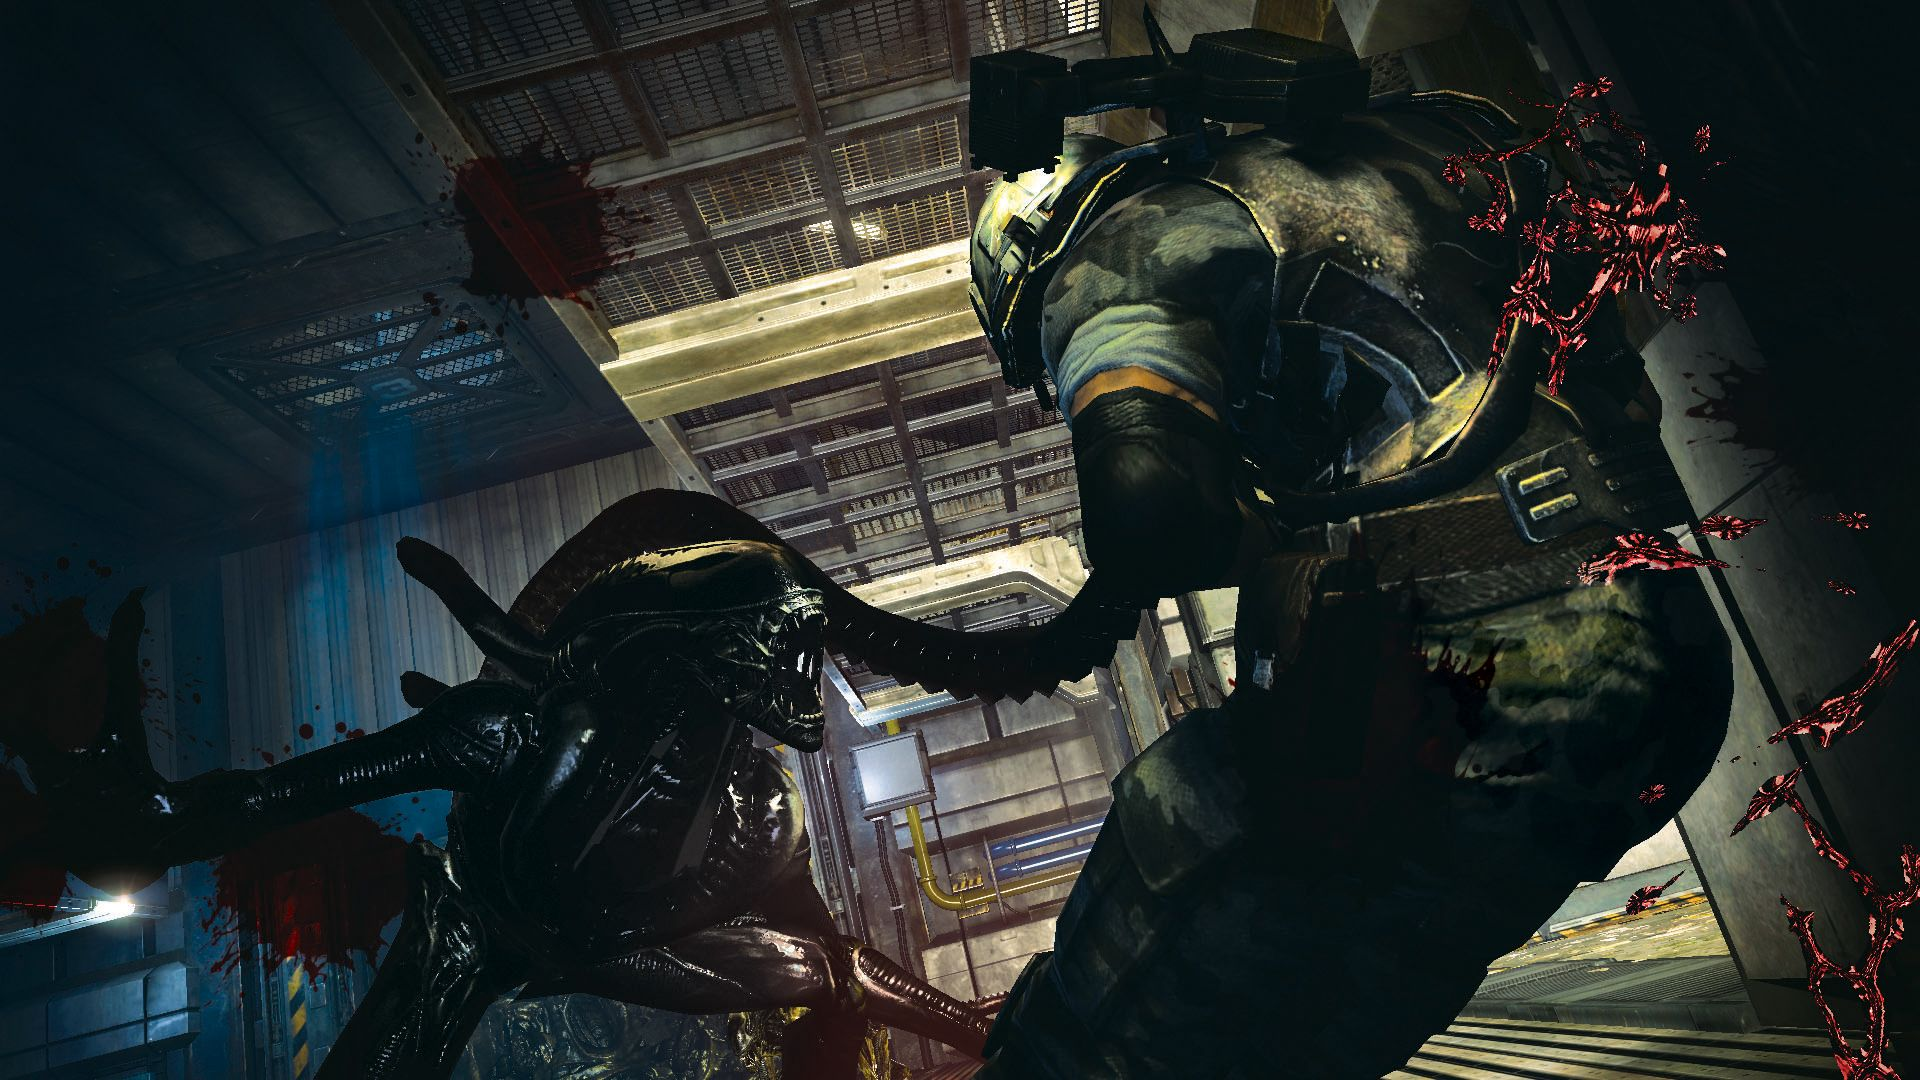 Aliens: colonial marines was developed by gearbox software and